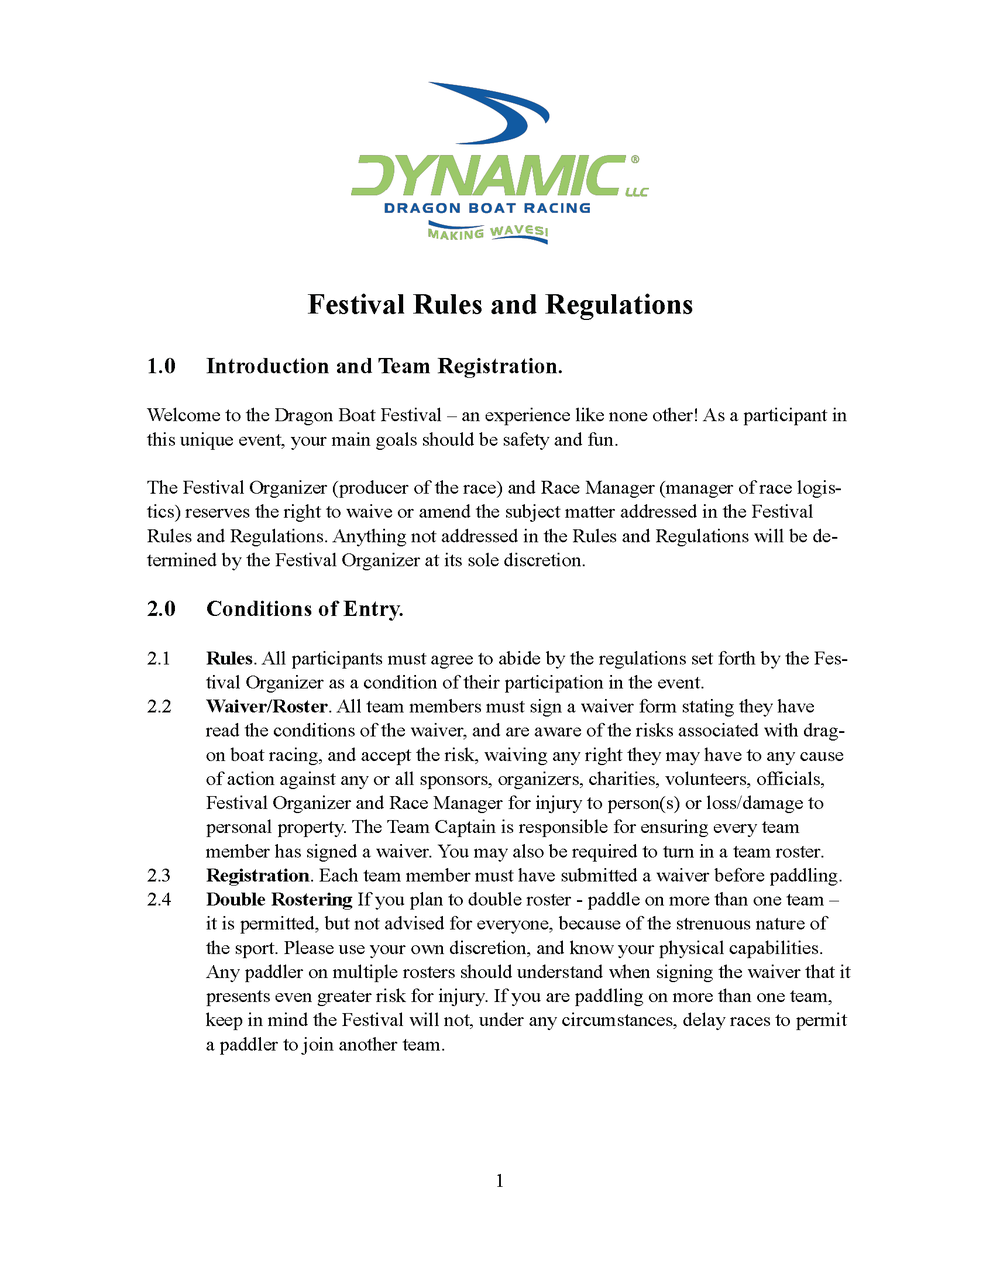 Dynamic_Festival_RulesRegulations_2019_Page_01.png